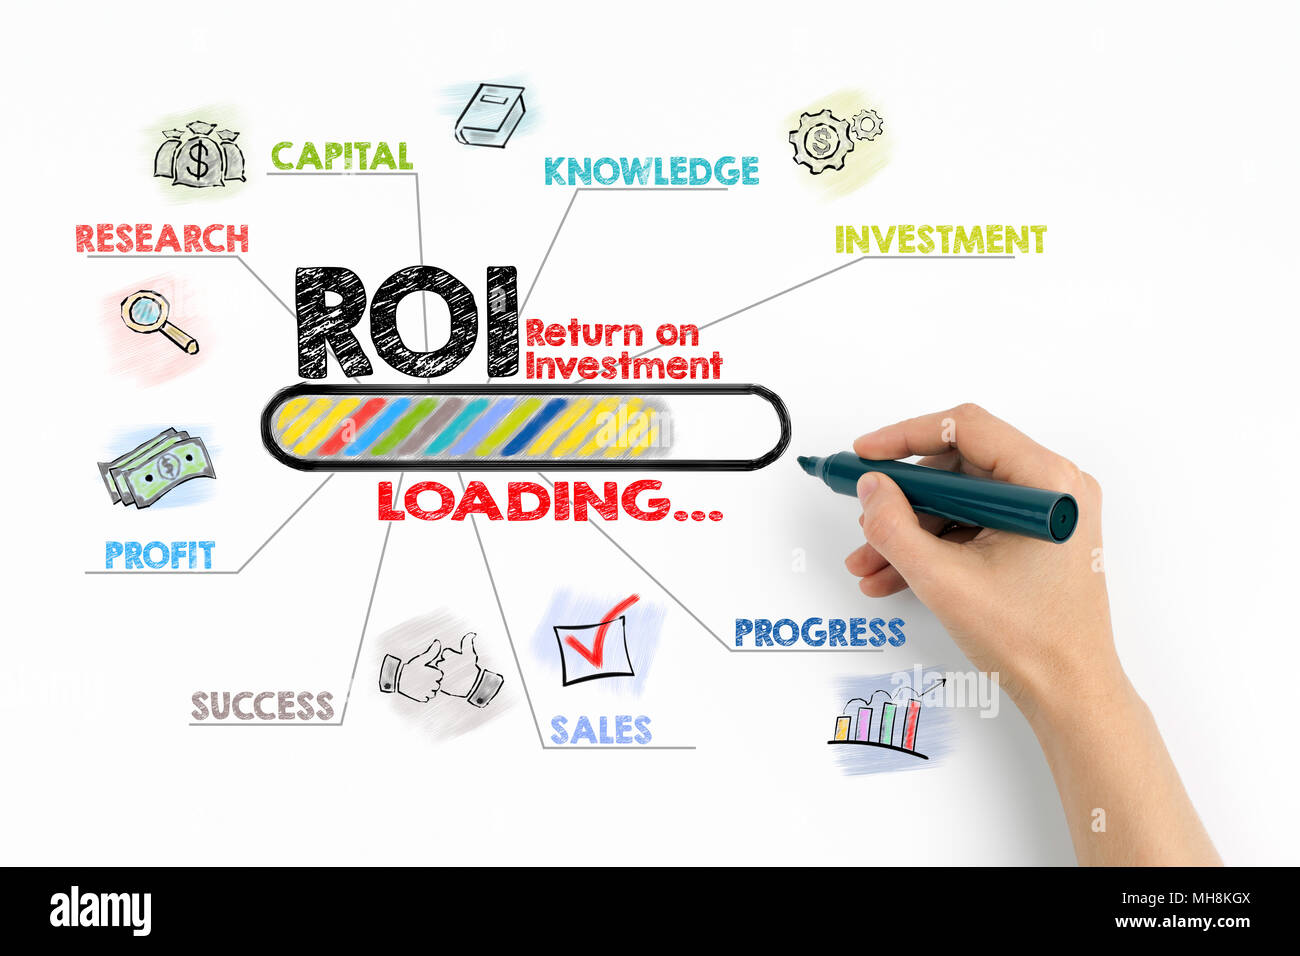 ROI Return on Investment Concept Stock Photo